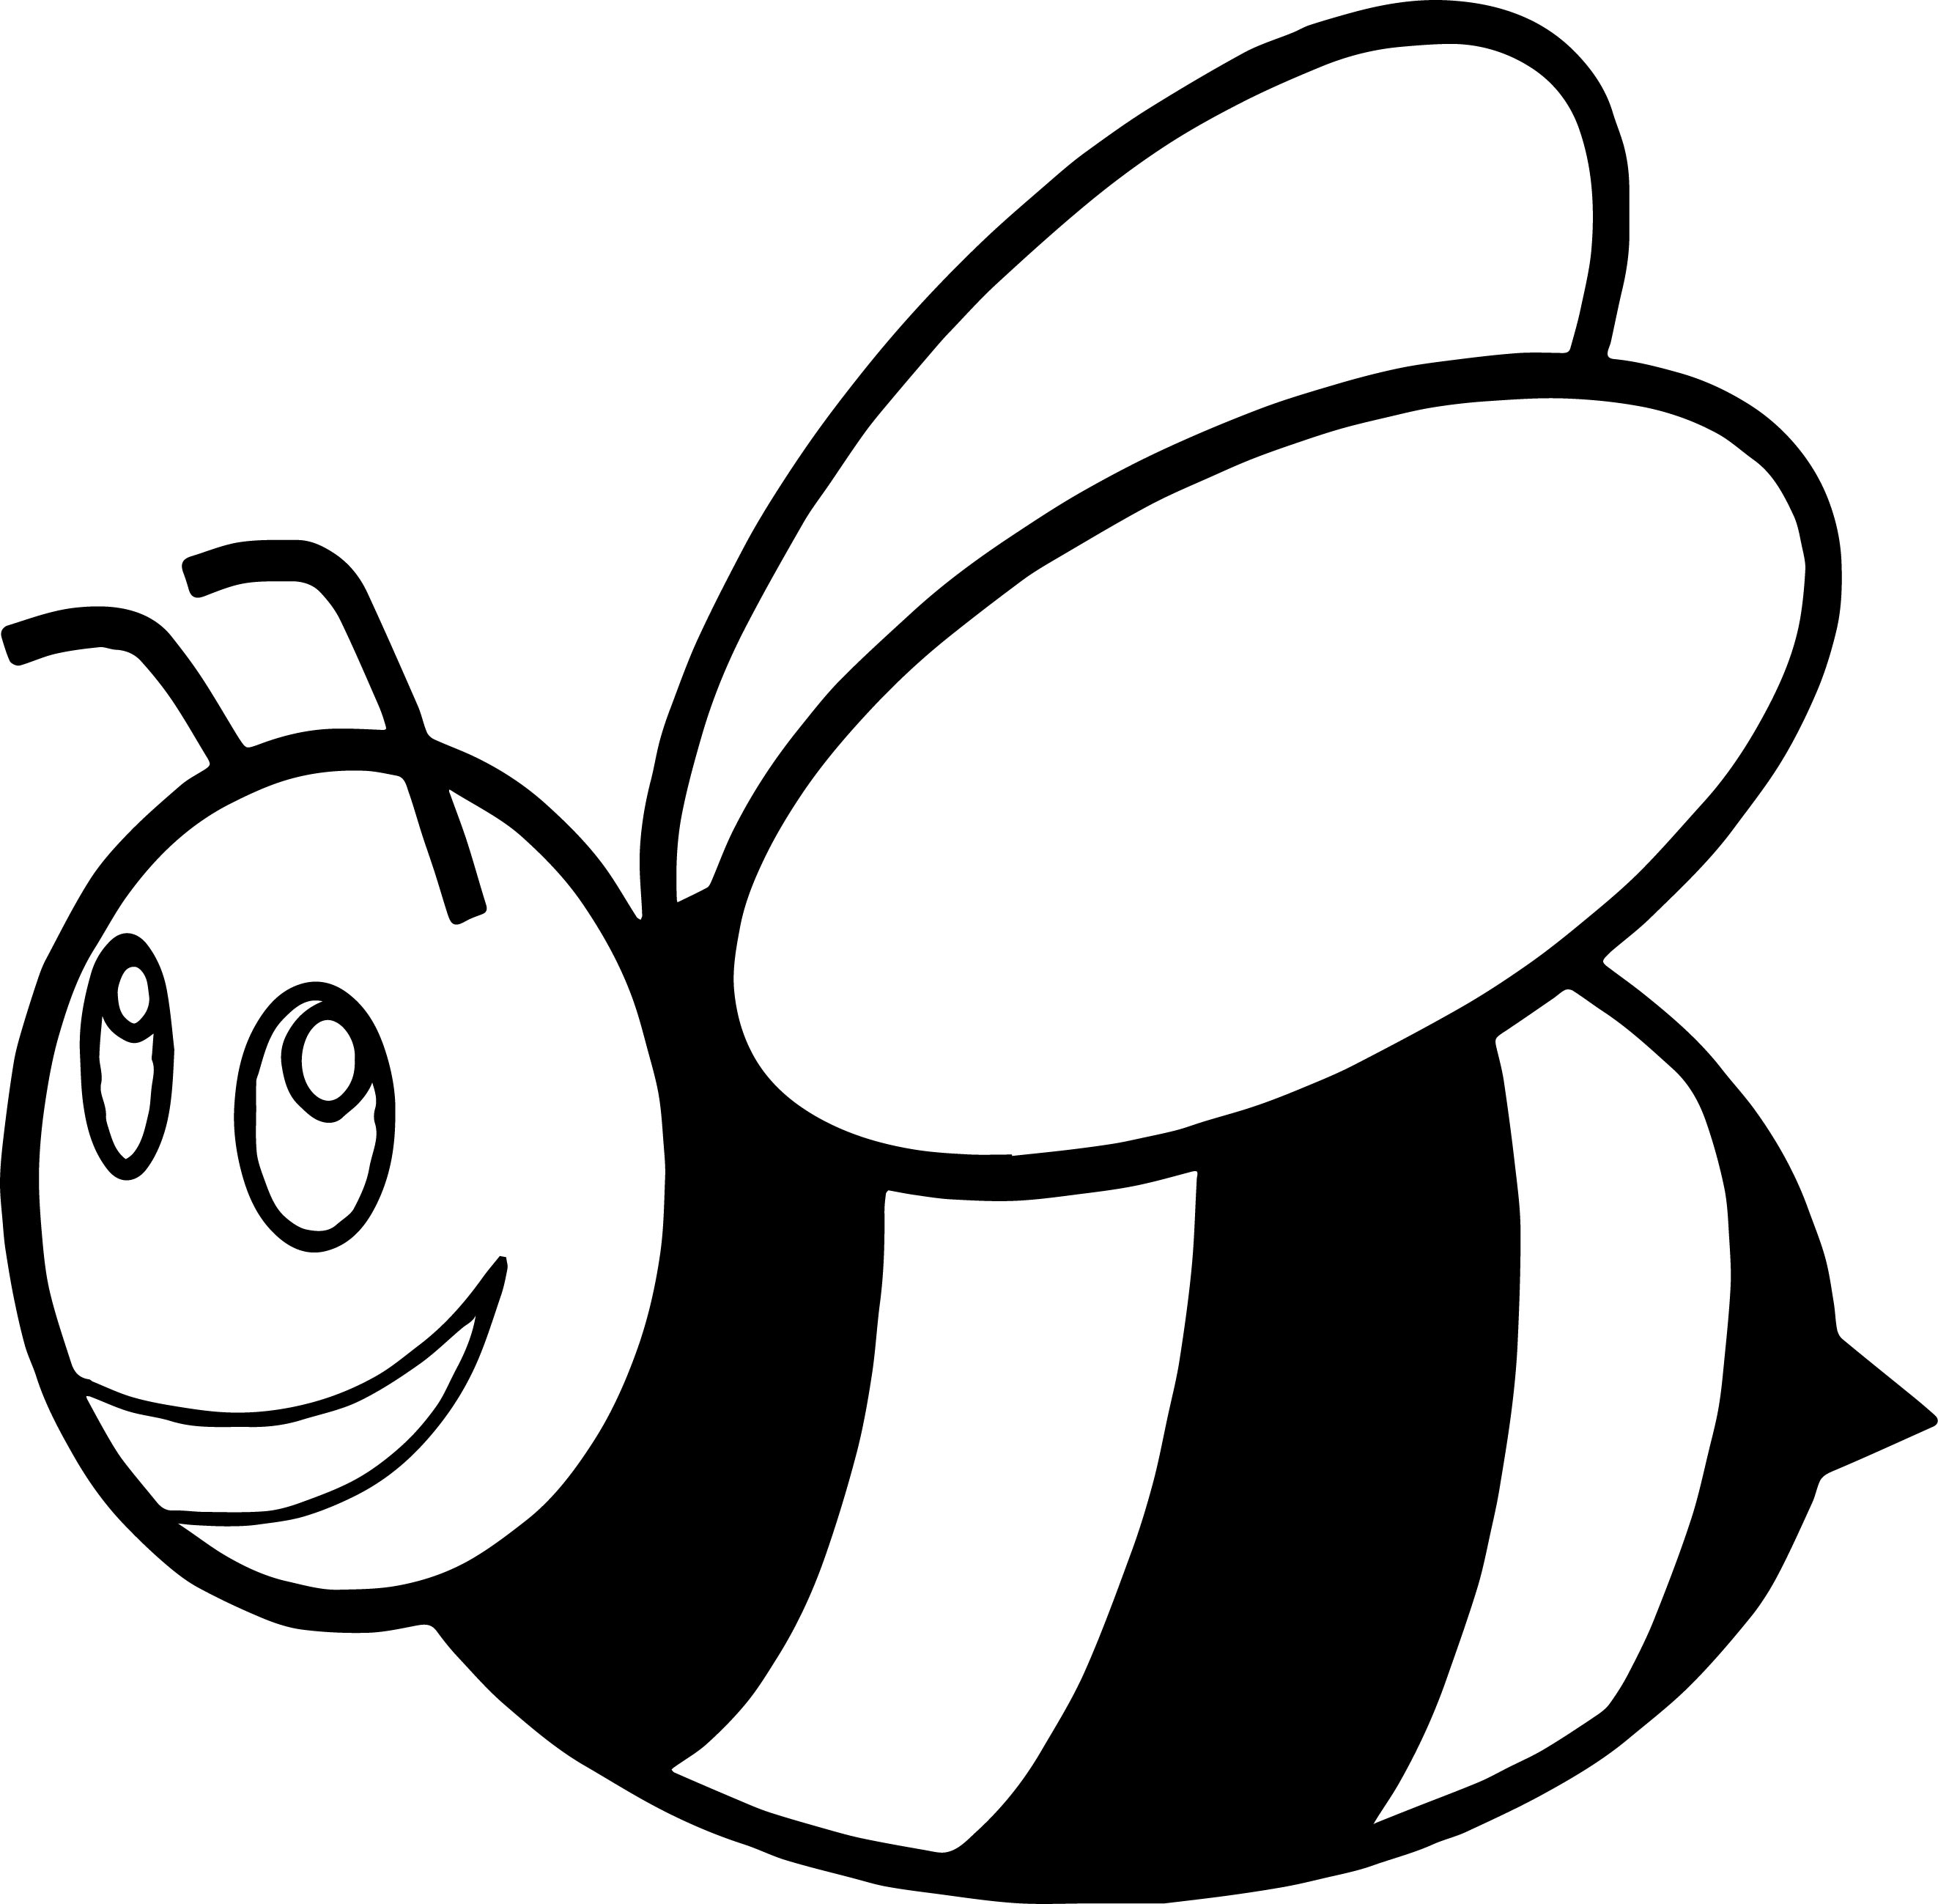 cartoon bumble bee coloring pages bumblebee insect coloring pages coloring pages to bee bumble cartoon coloring pages